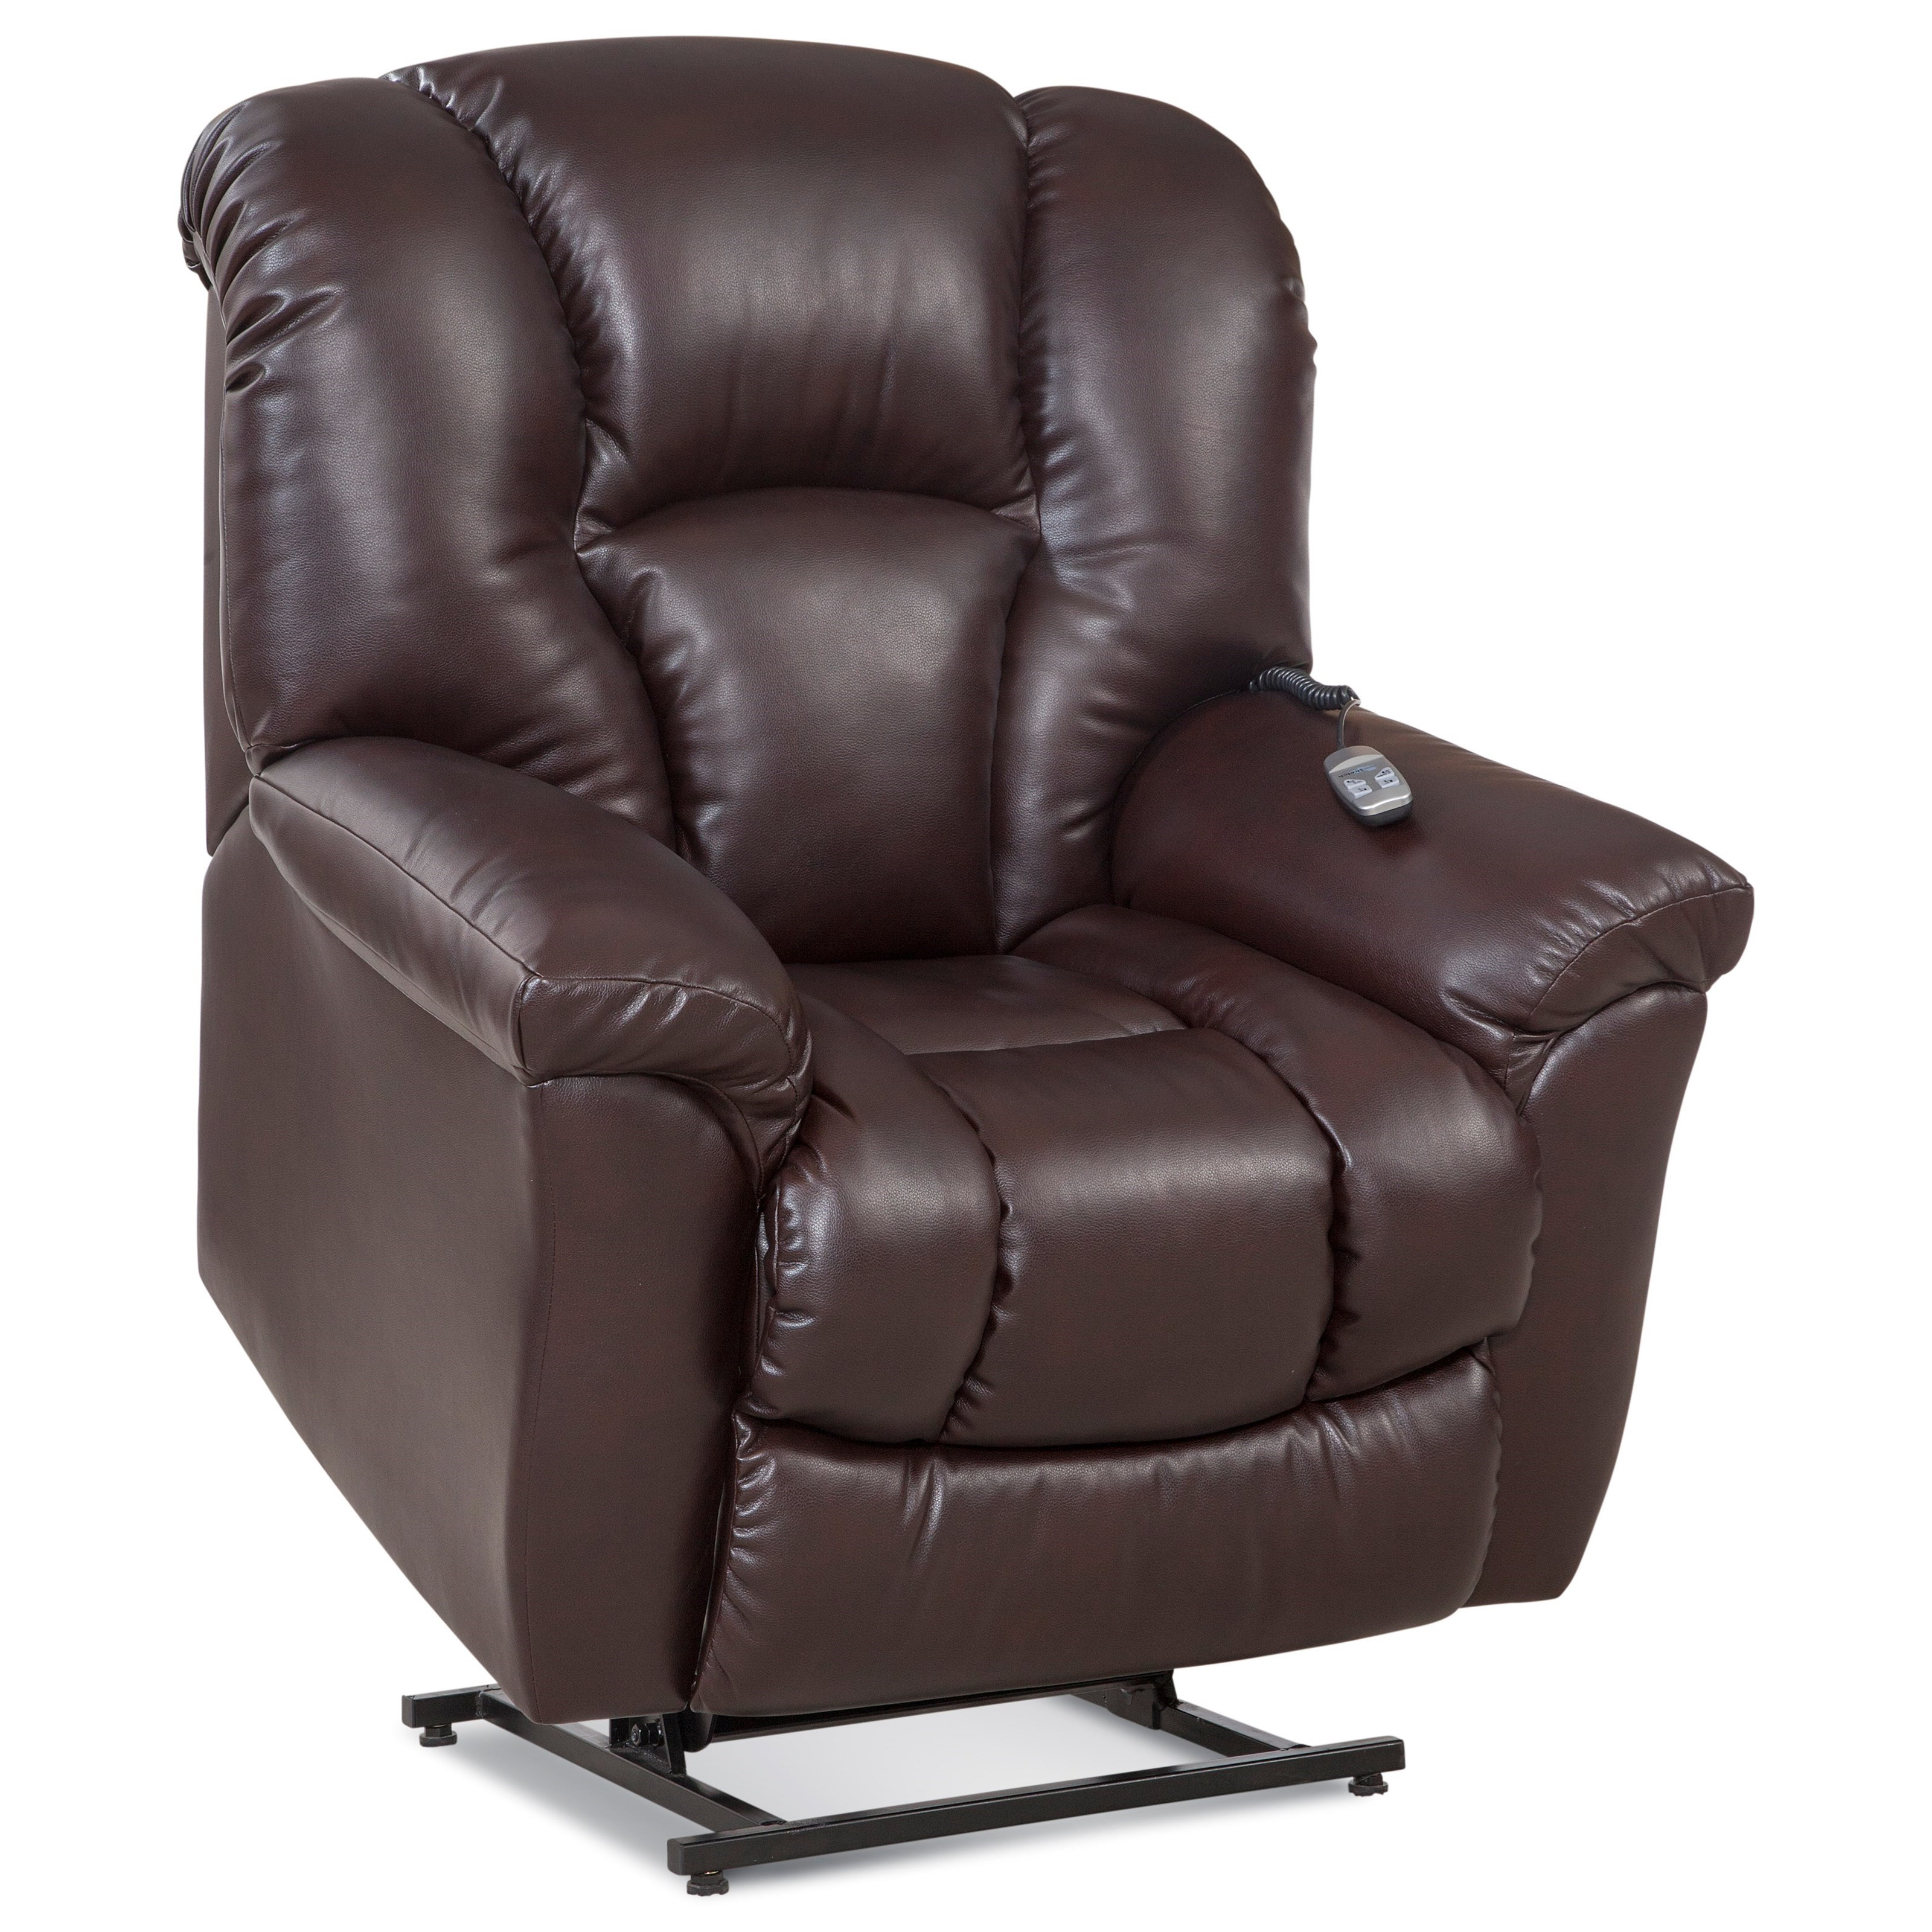 116 Lift Recliner by HomeStretch at Gill Brothers Furniture